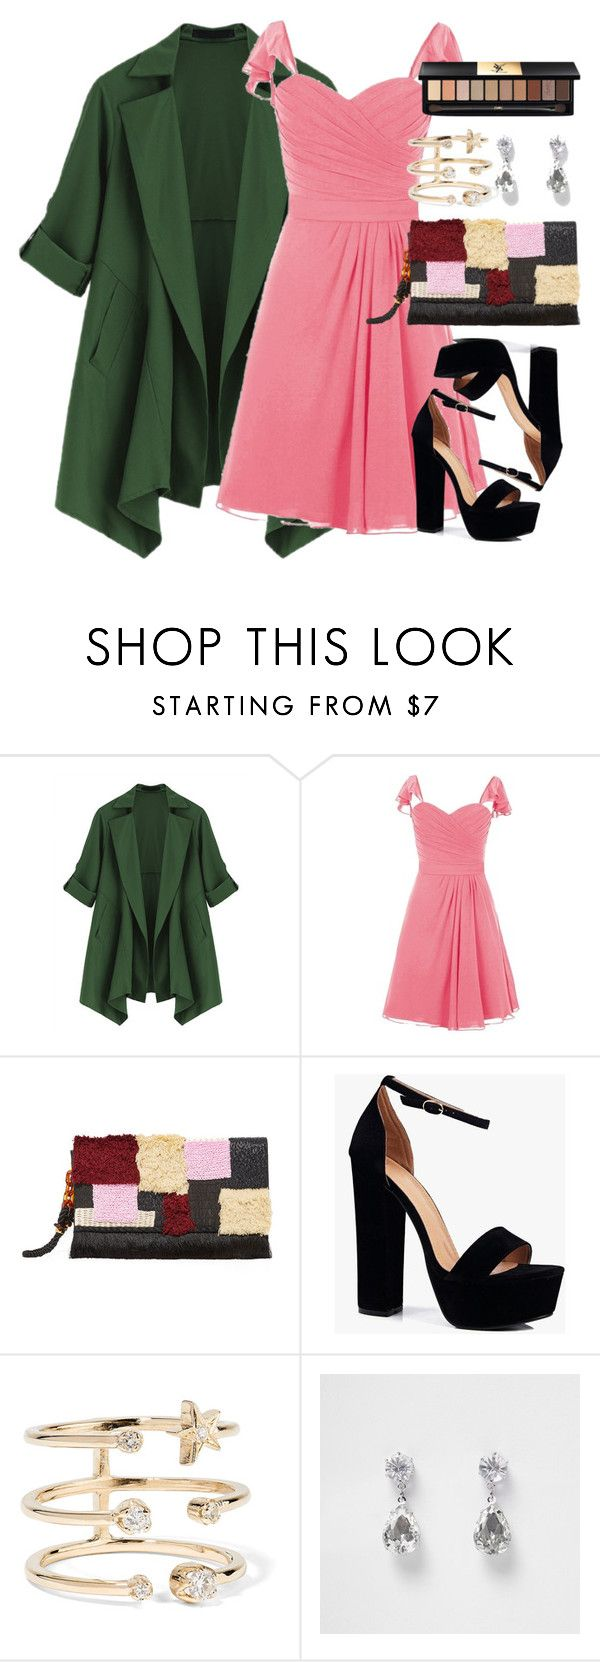 """""""Untitled #17"""" by bebebelabee on Polyvore featuring Lizzie Fortunato, Boohoo, Andrea Fohrman, River Island and Yves Saint Laurent"""